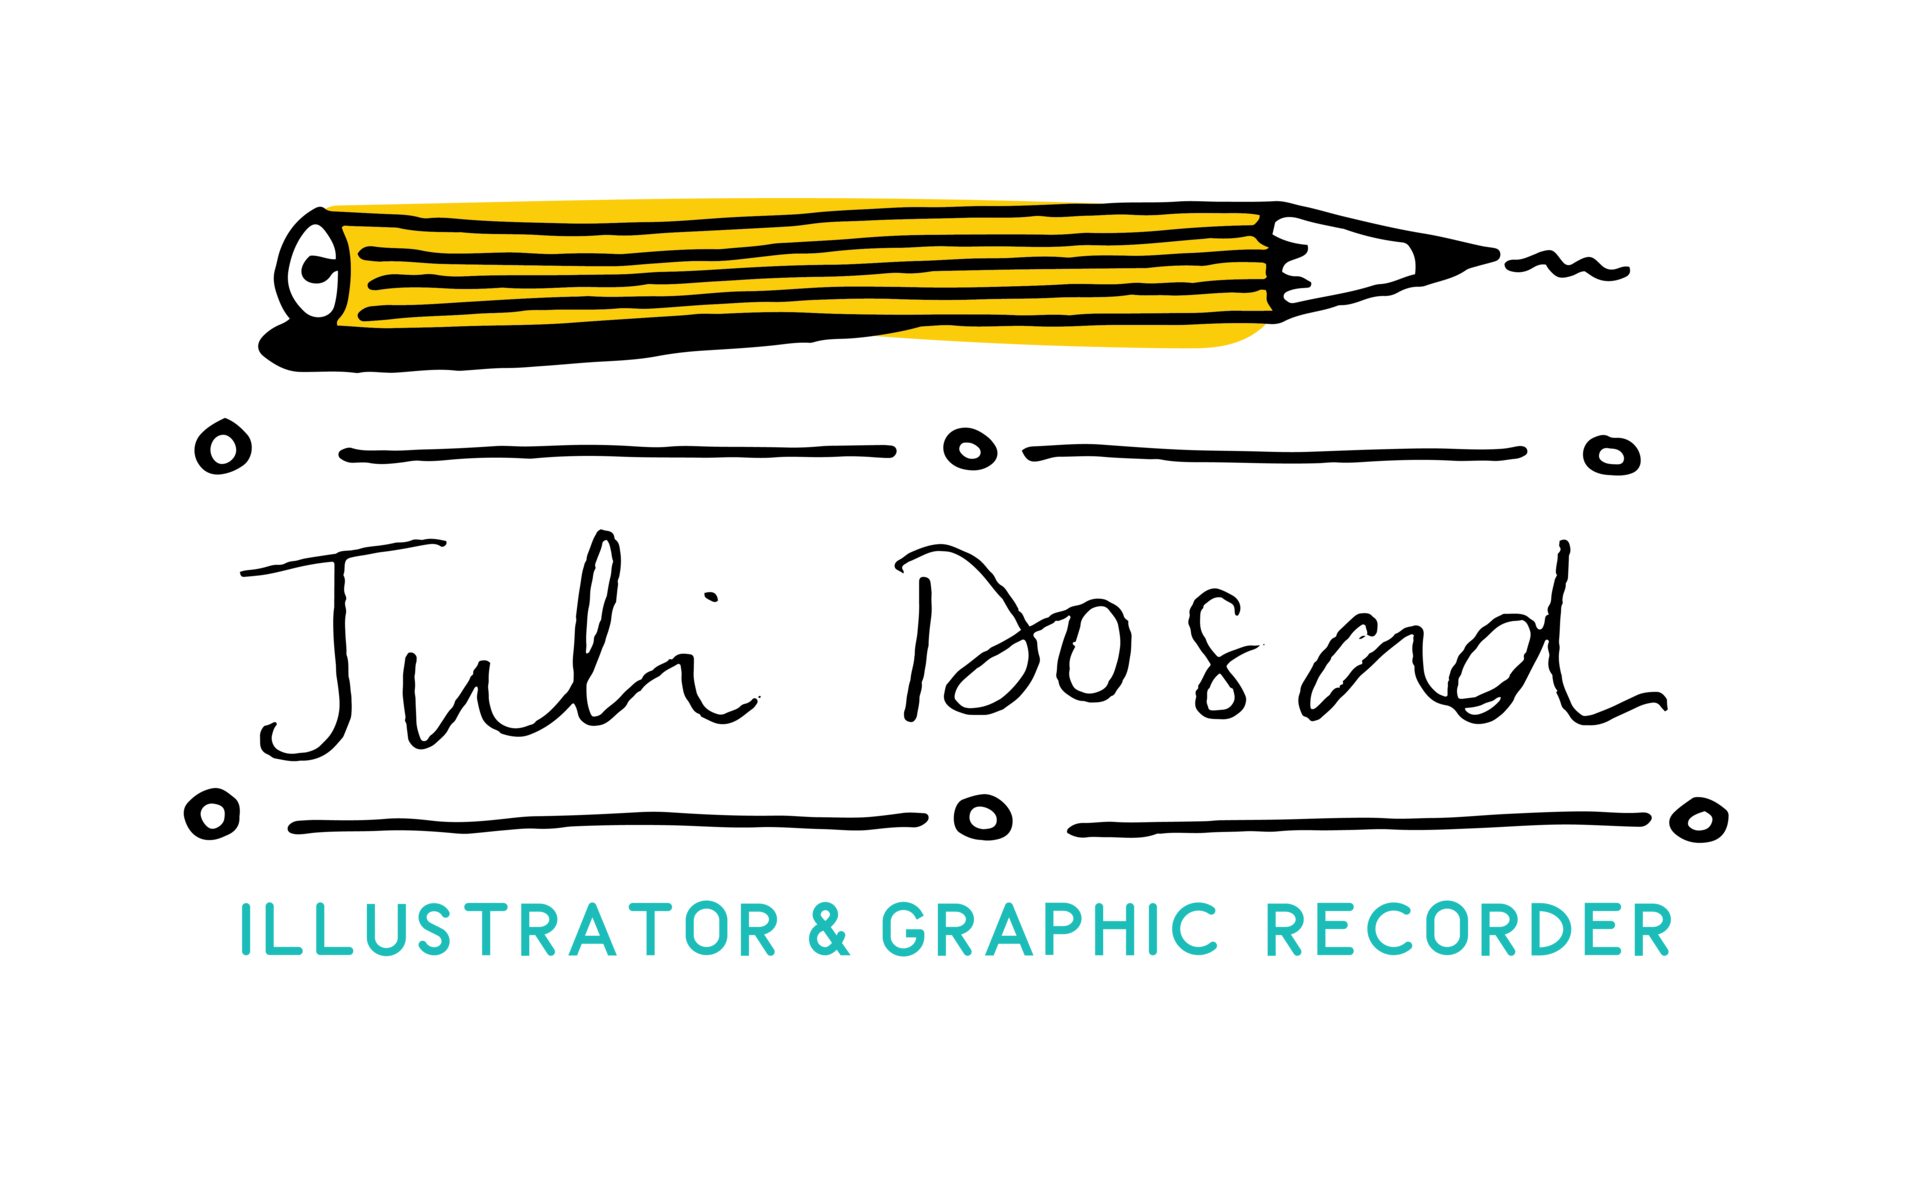 Juli Dosad Illustrator & Graphic Recorder